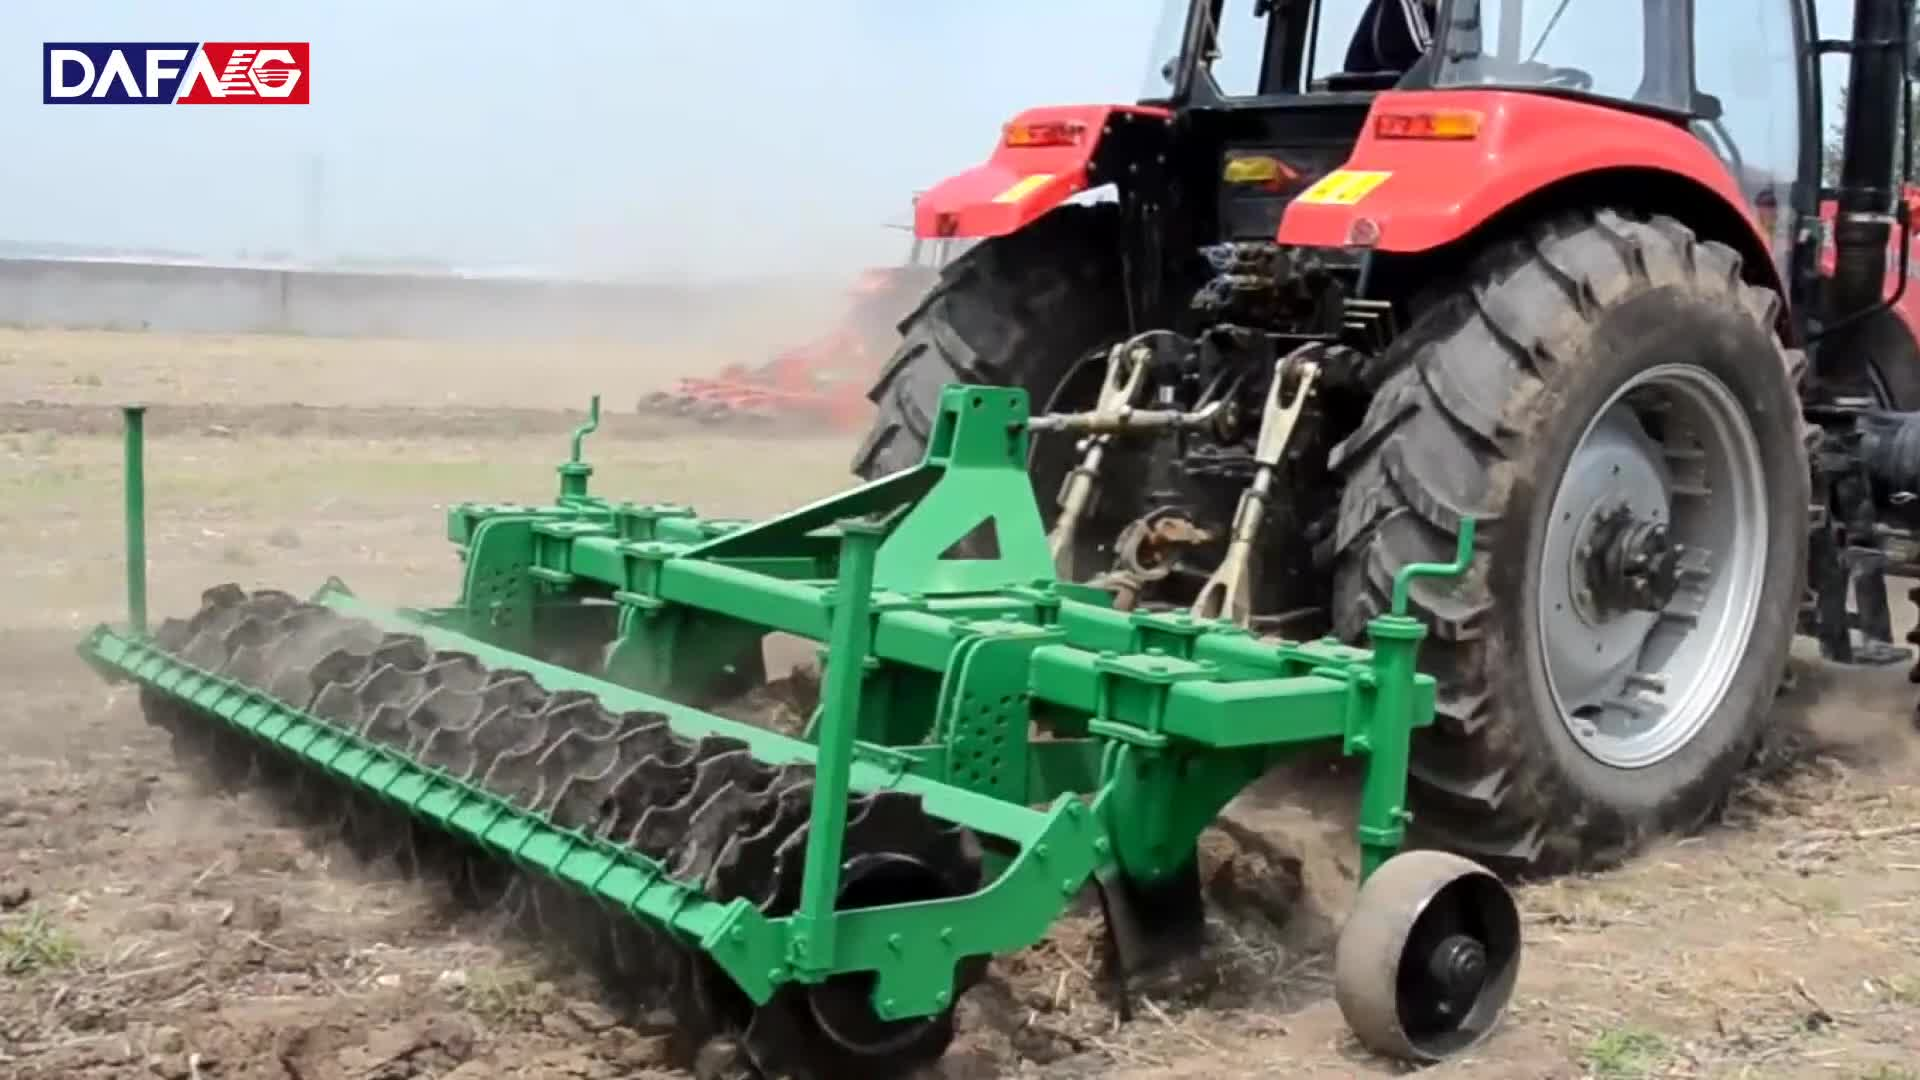 Factory Price 1 MOQ Soil Preparation Tools Land Preparing Machine Subsoiler